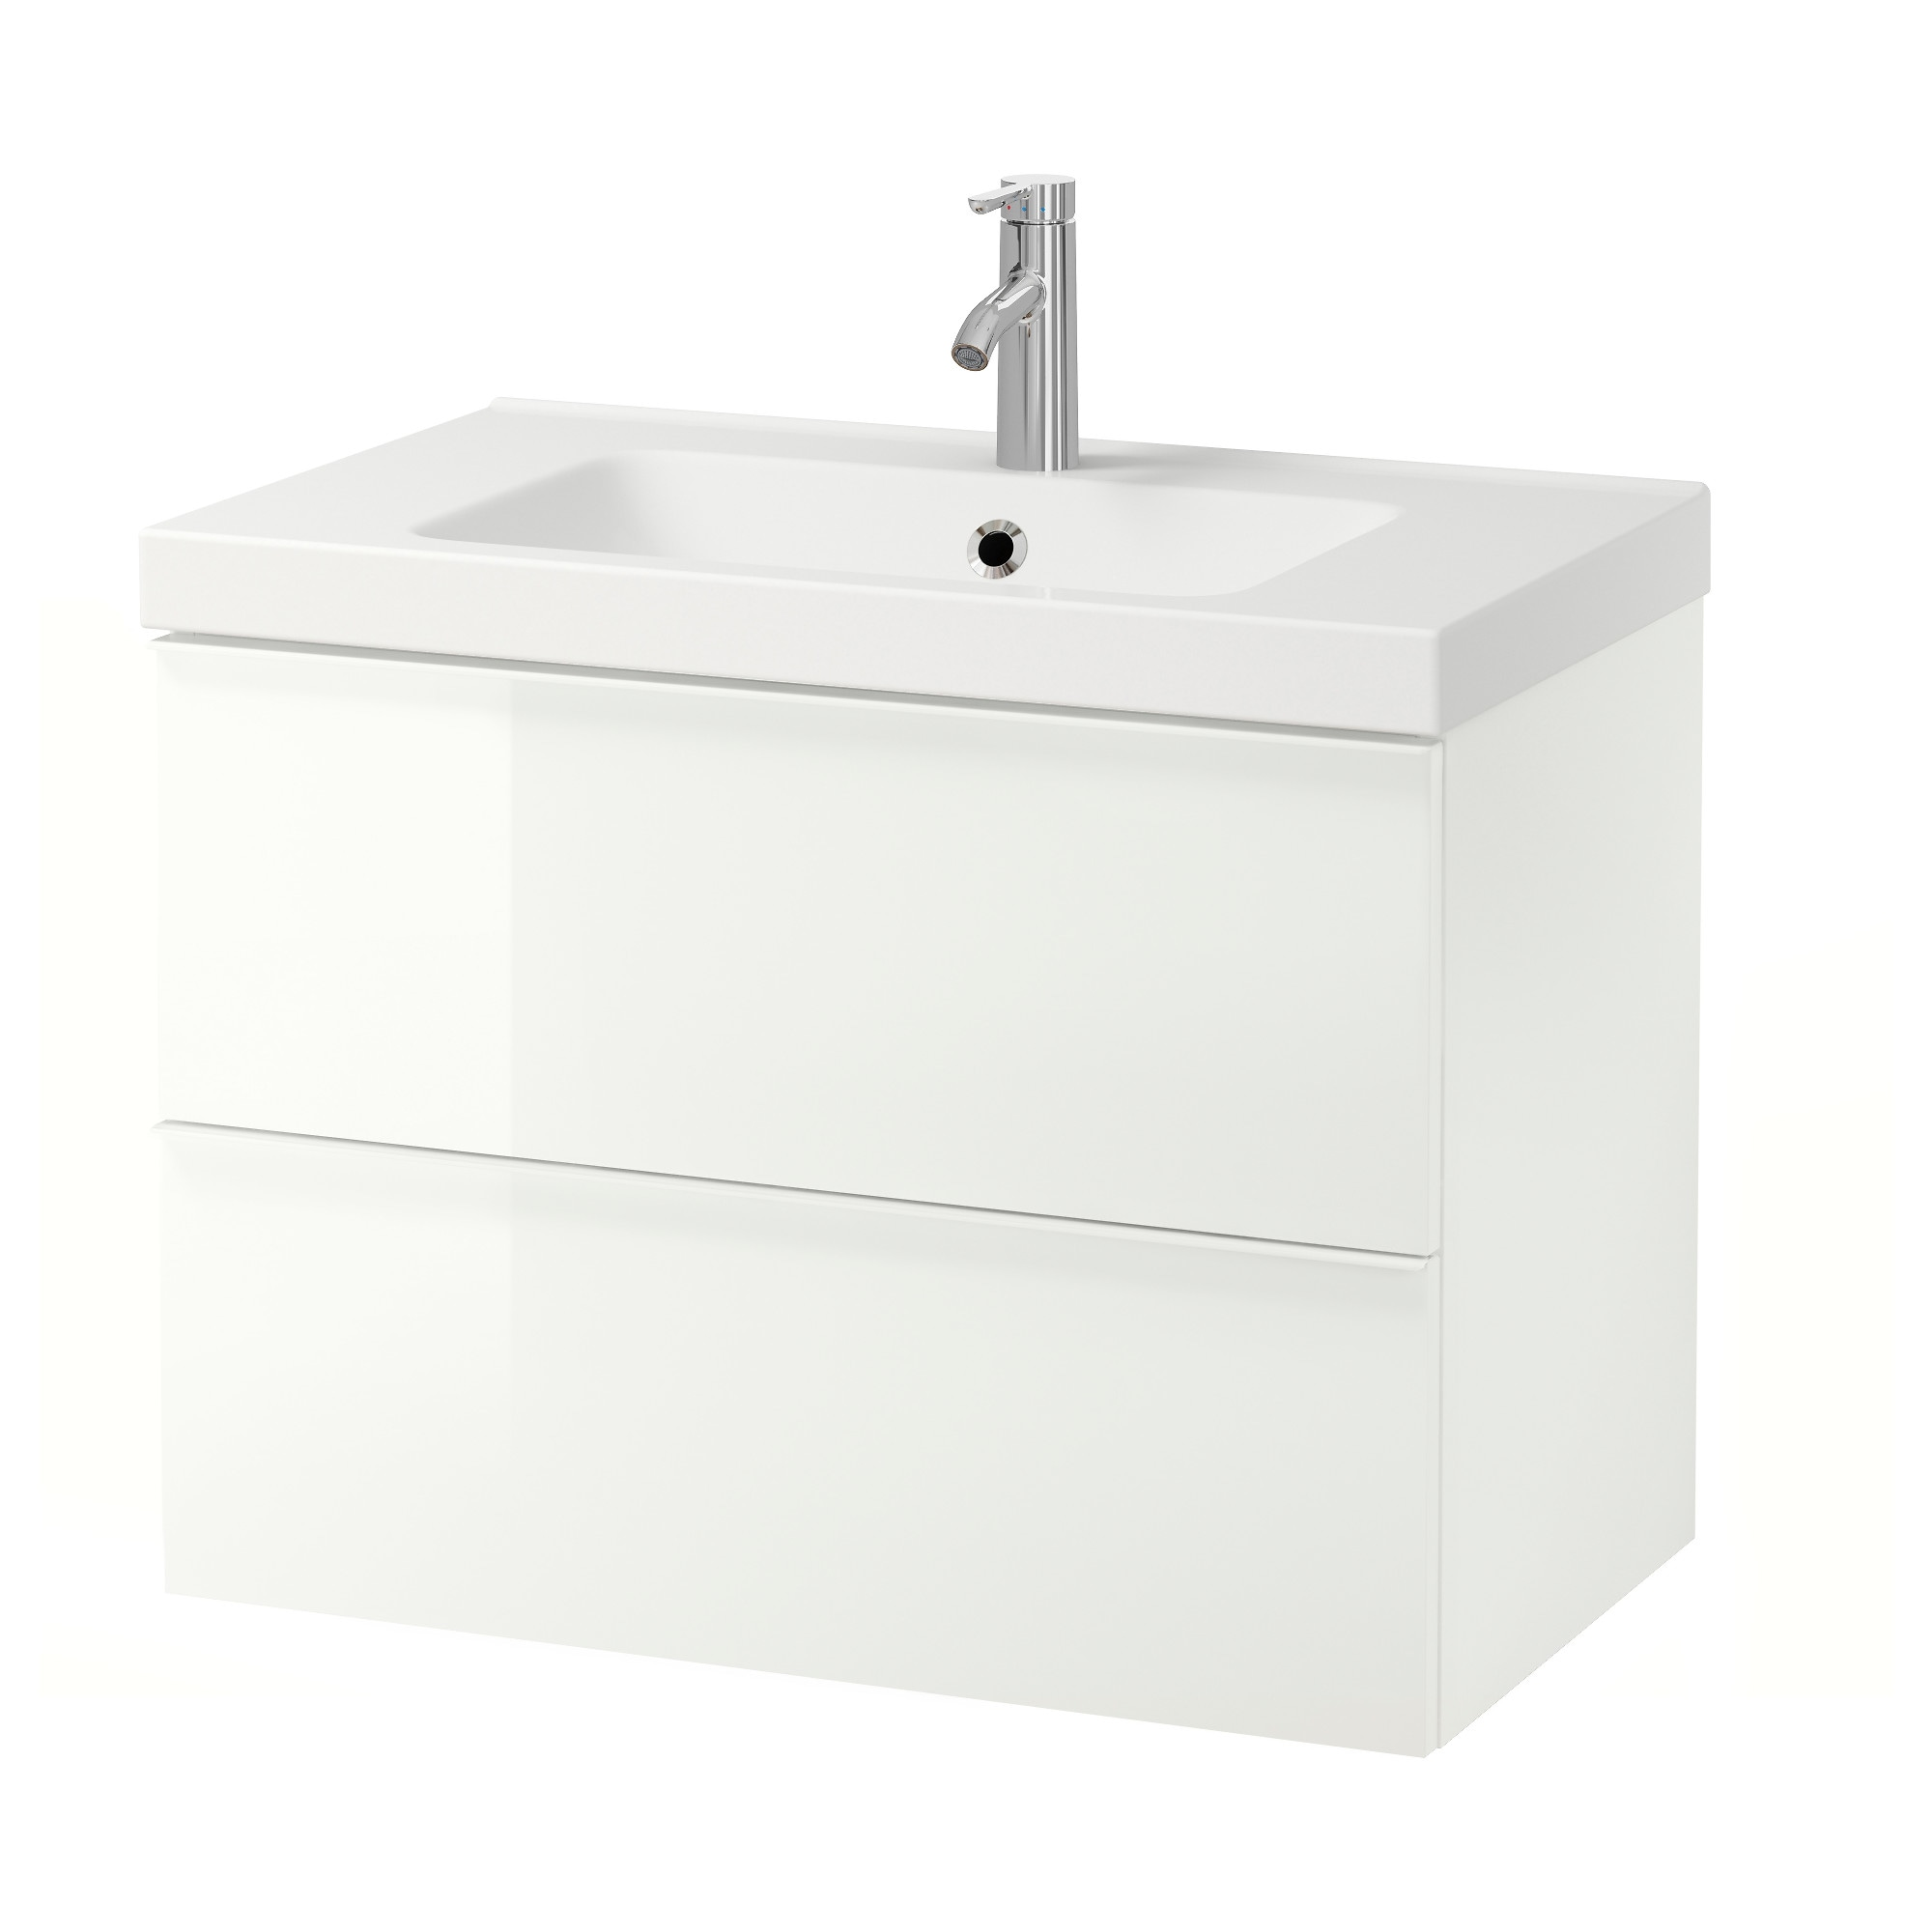 Bathroom sink dimensions mm - Godmorgon Odensvik Sink Cabinet With 2 Drawers High Gloss White White Width 32